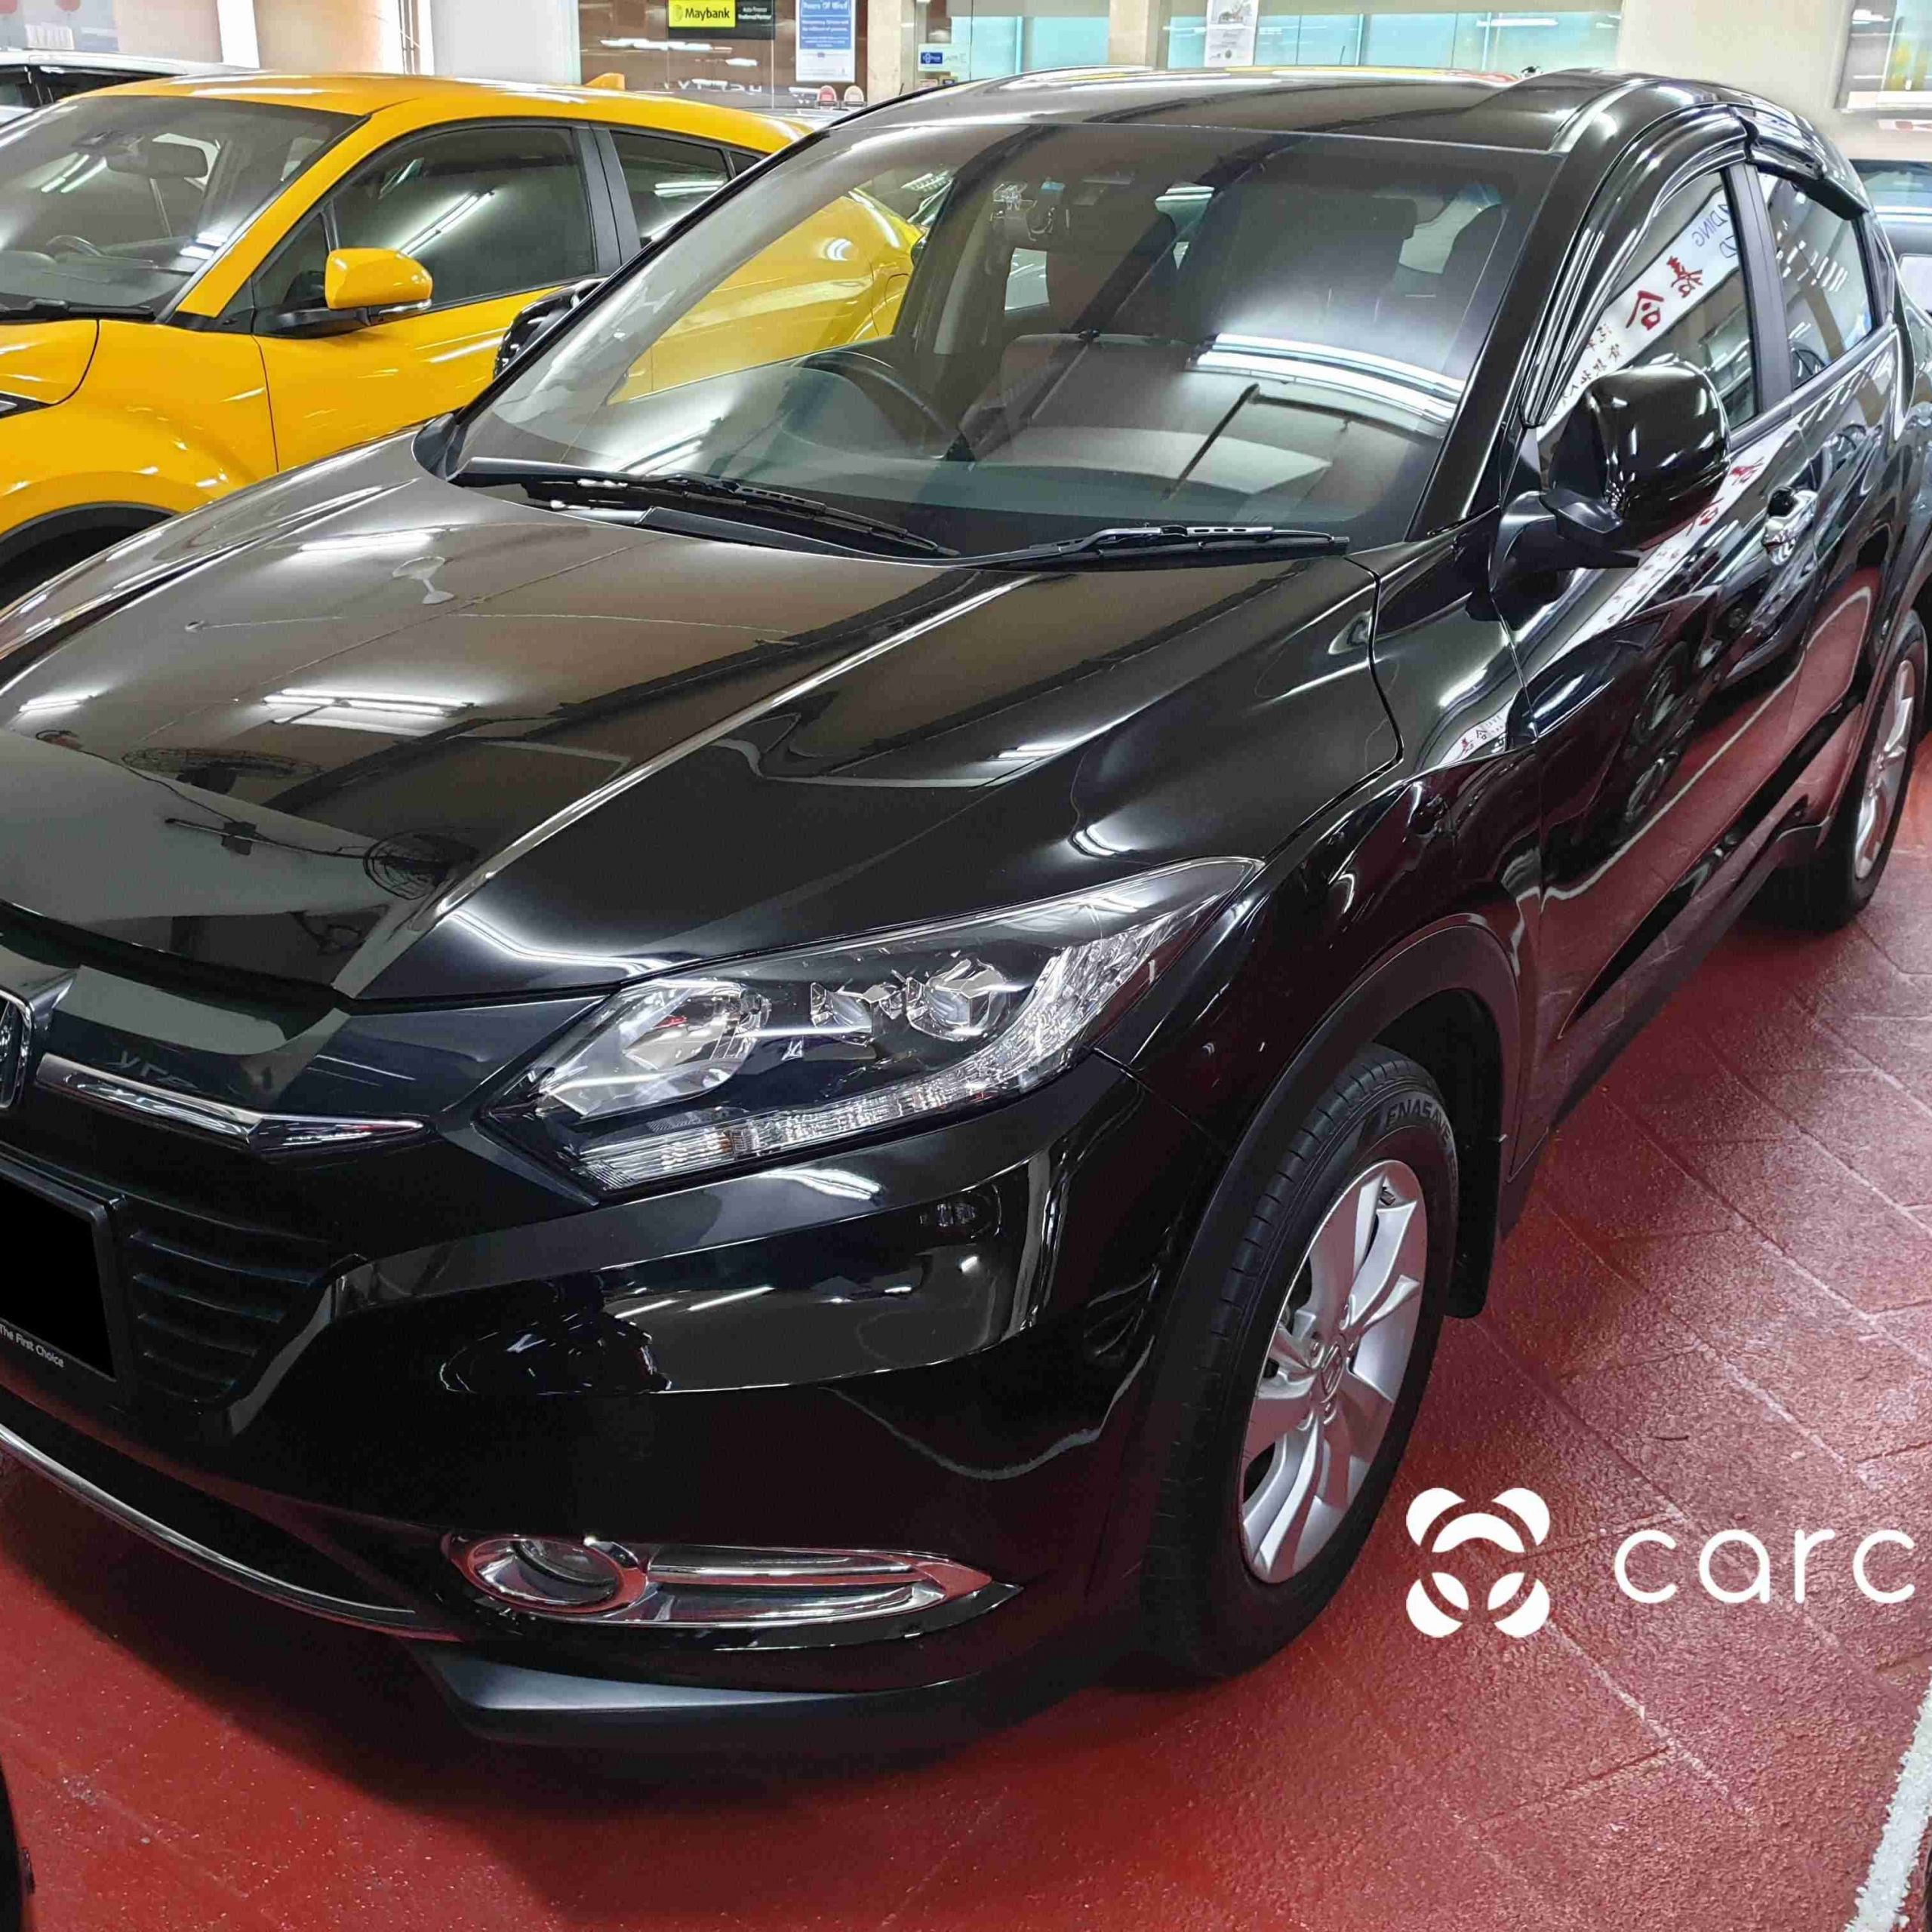 Used Suv for Sale Fresh Used Honda Vezel for Sale In Singapore by Ka Hup Vehicles